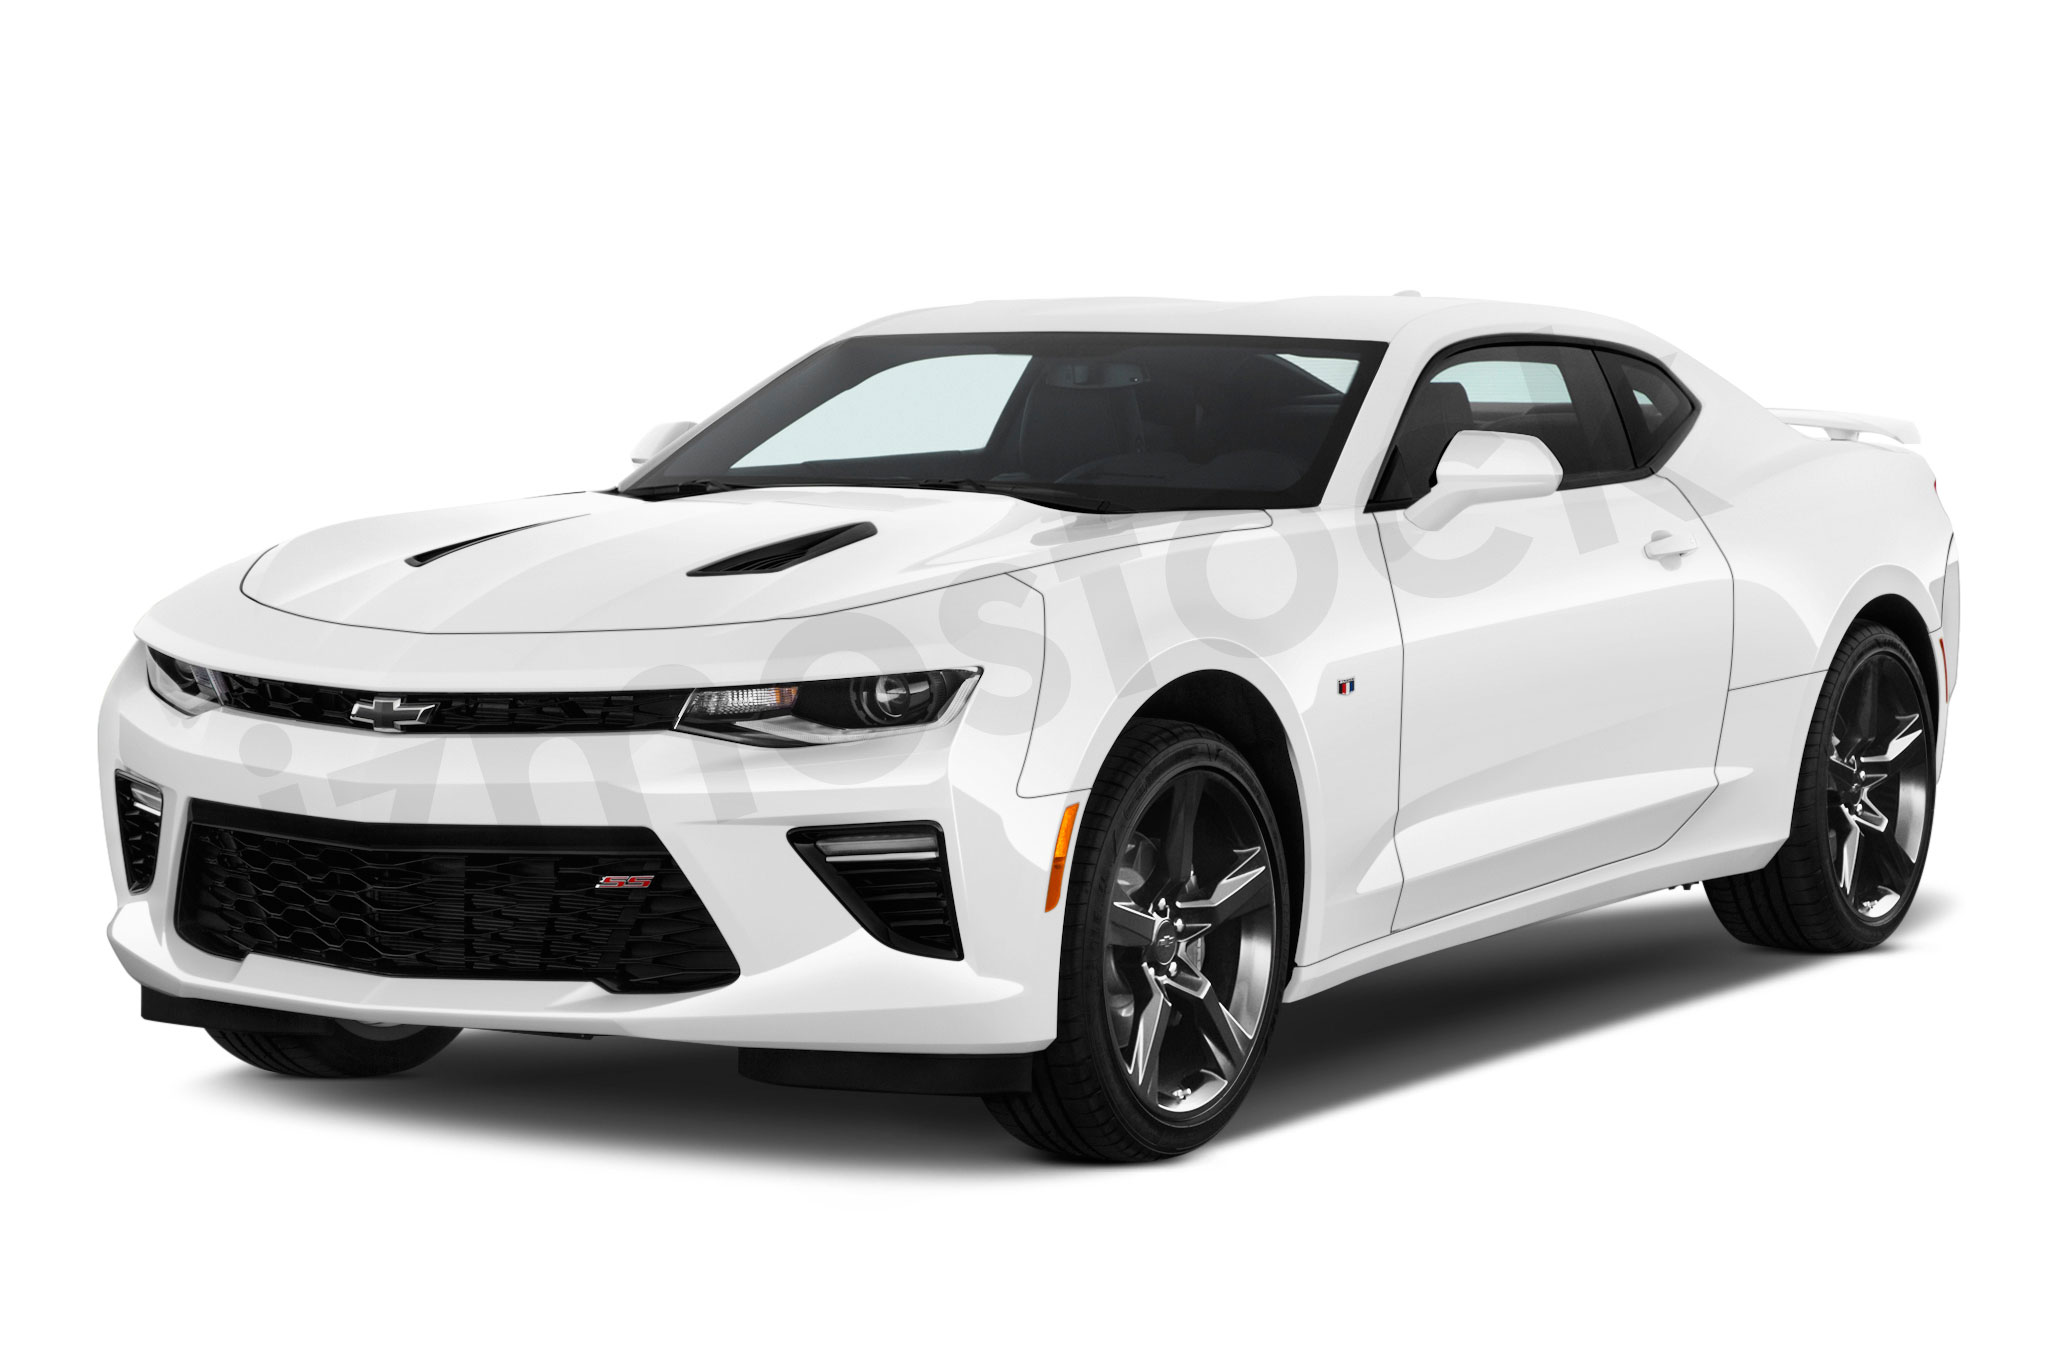 2017 chevrolet camaro ss review 50 years of the iconic american muscle car. Black Bedroom Furniture Sets. Home Design Ideas